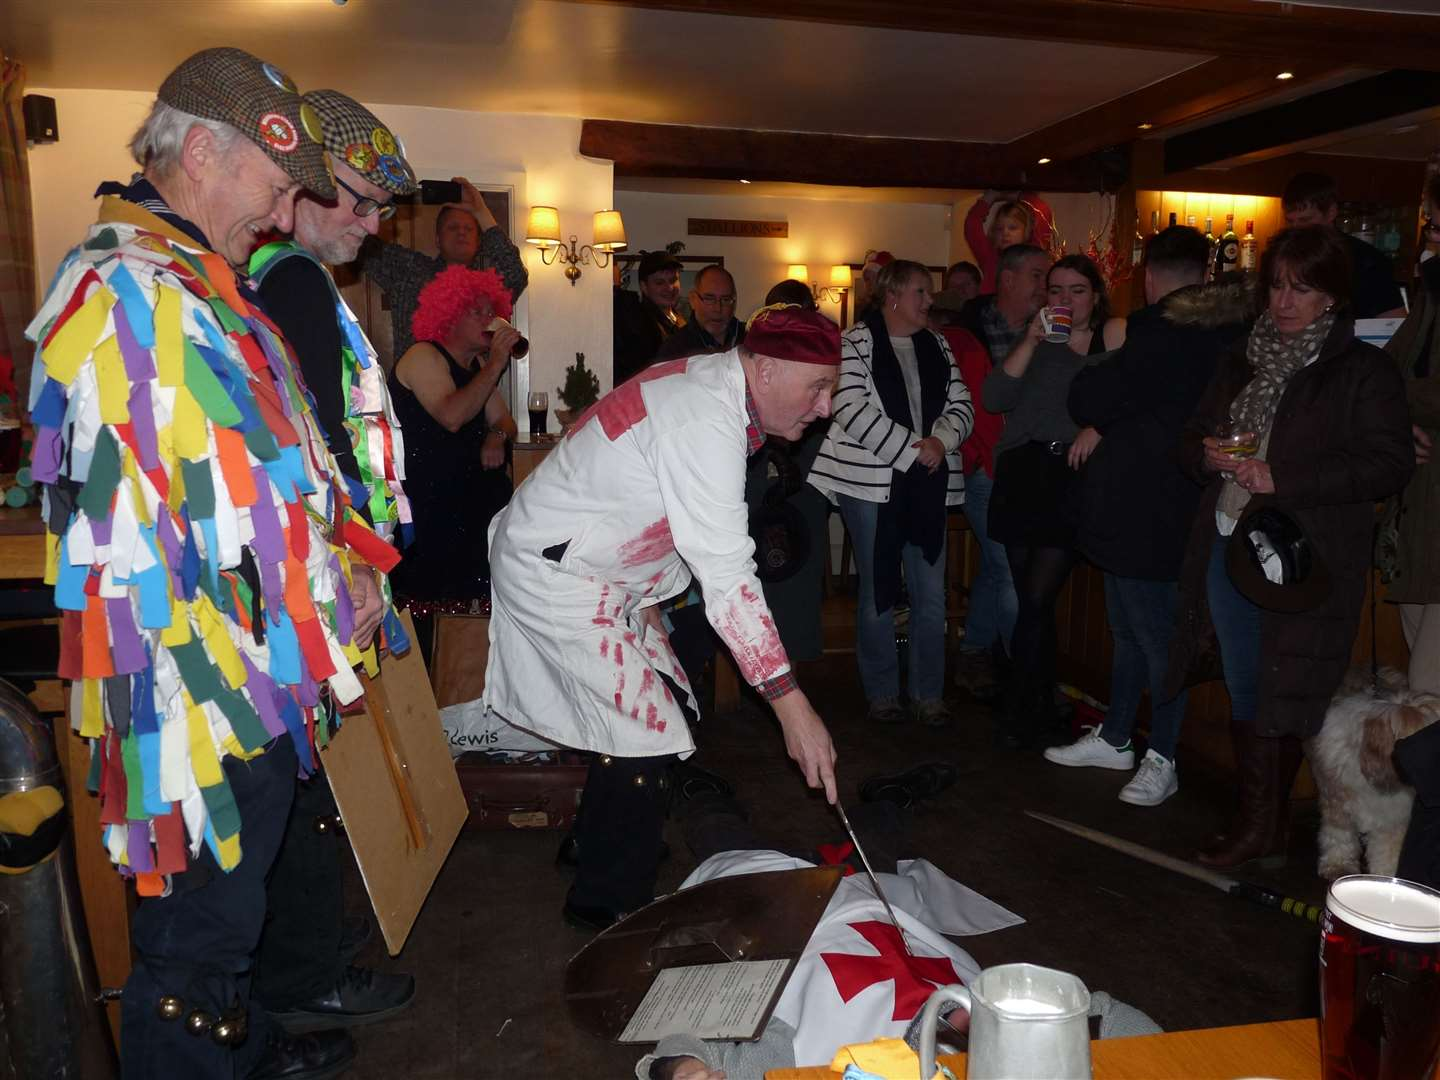 Rutland Morris Mummers play at The Horse and Jockey in Manton on Boxing Day